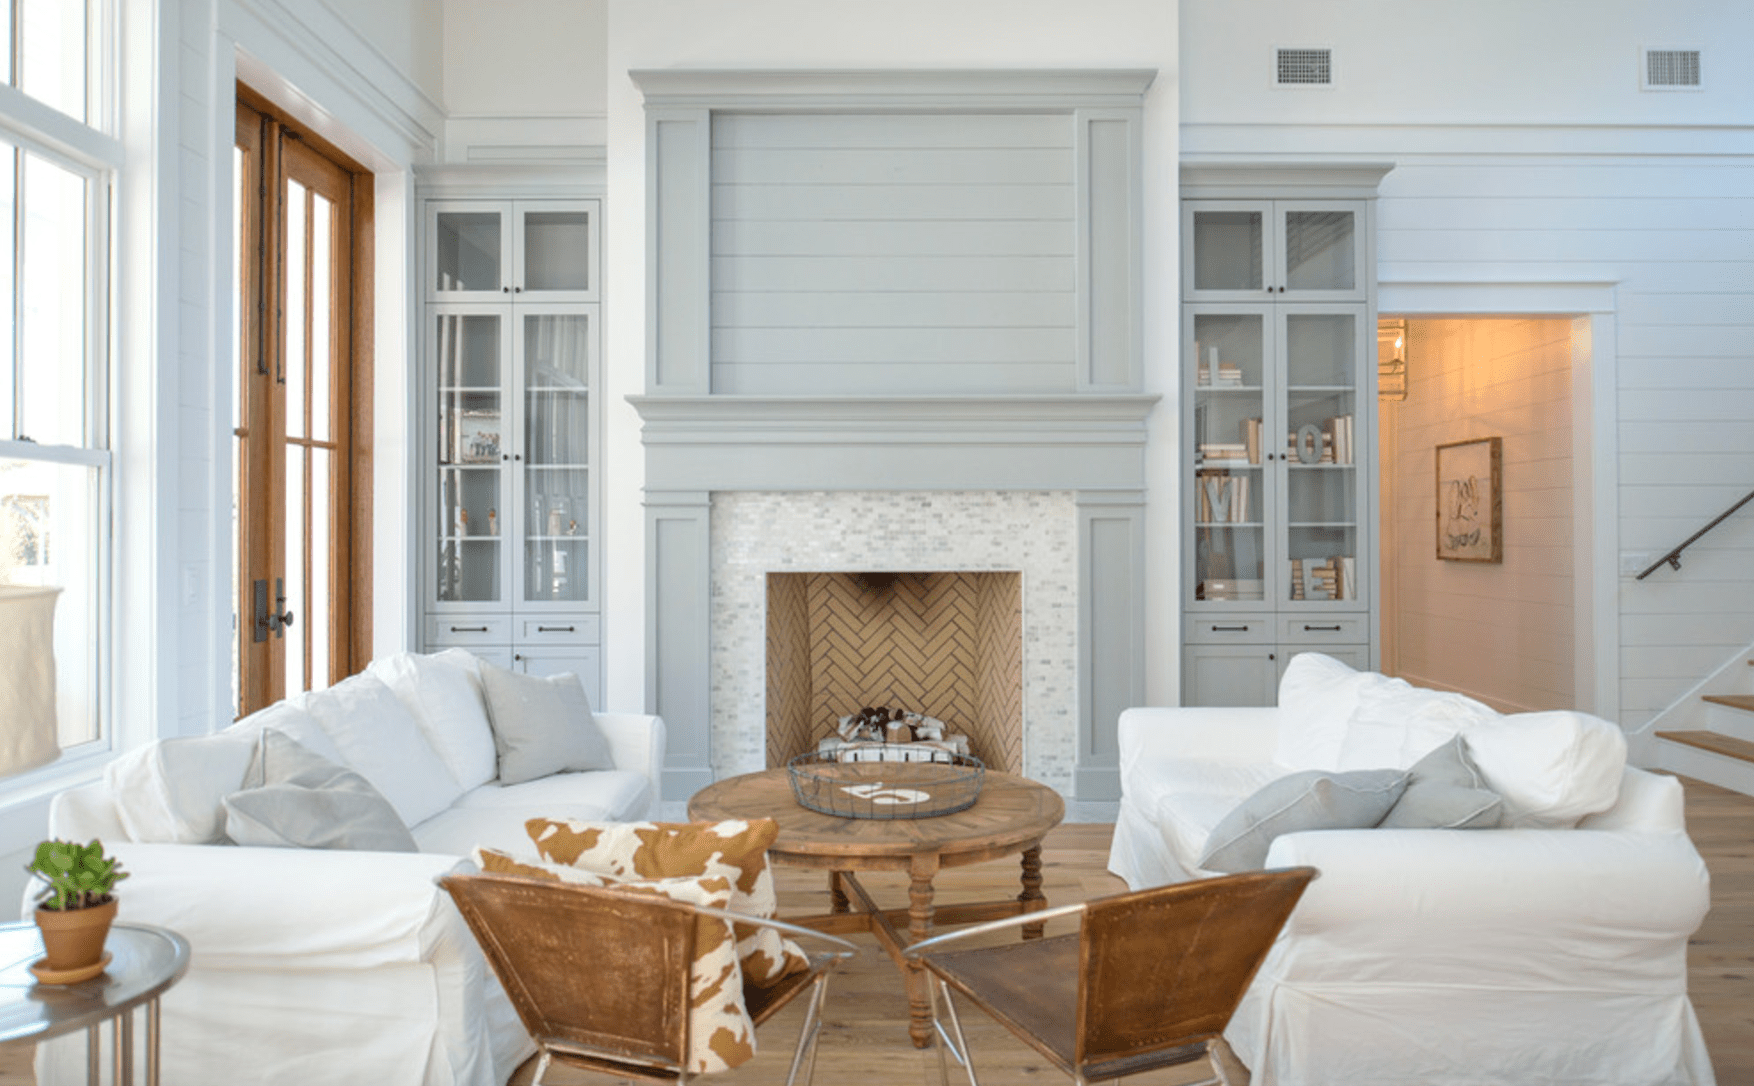 How to sell your home. Painted wood paneling in farmhouse style.